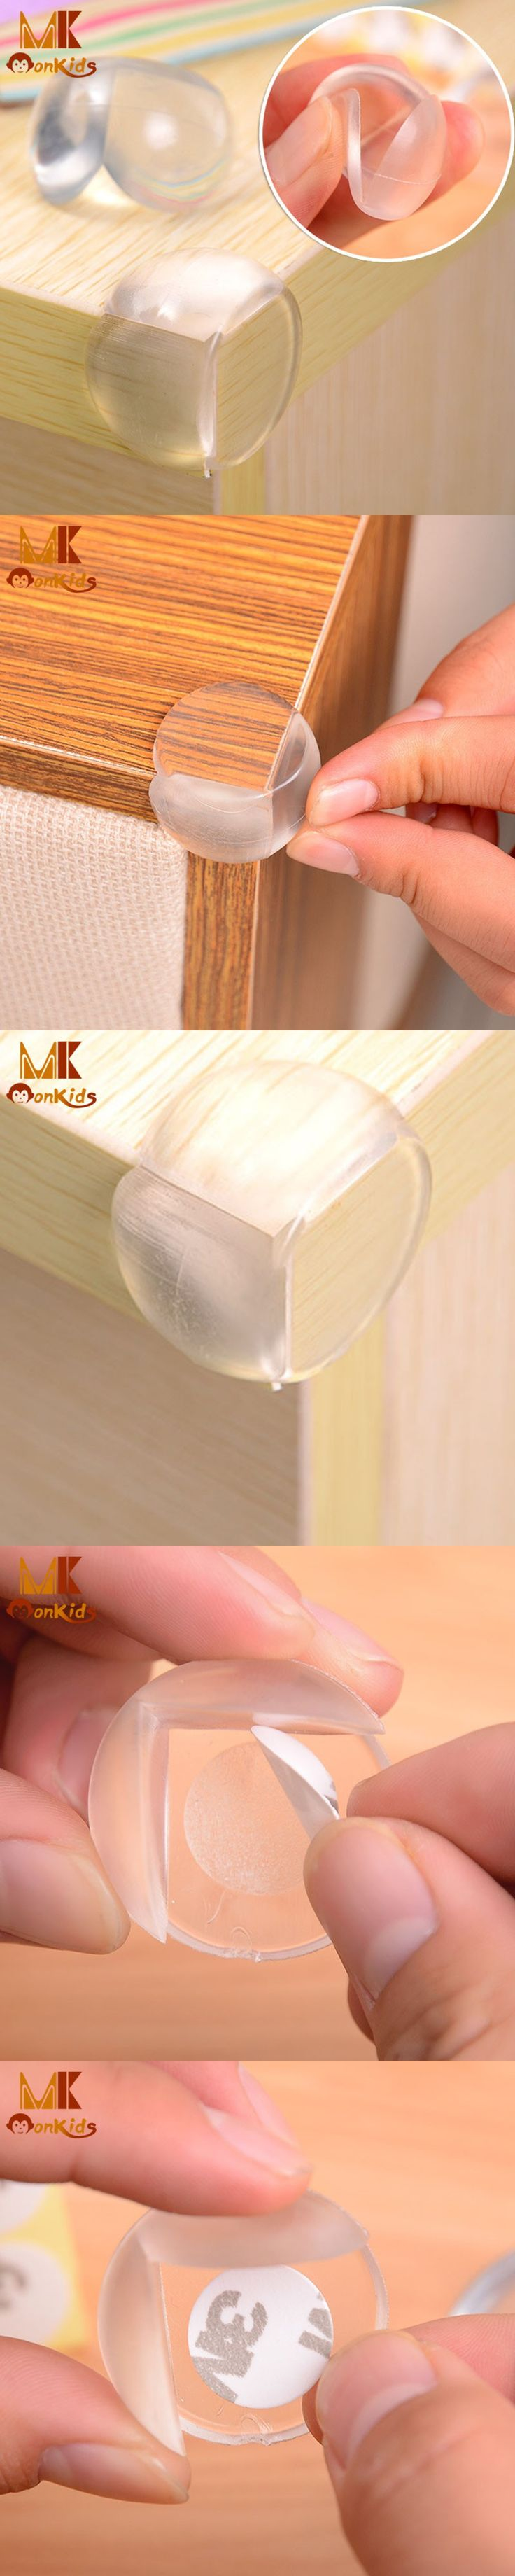 Monkids 5Pcs/Bag Baby Safety Corner Guards Table Protector Edge Child Safety Protector Safety Products Protection Cover $2.84